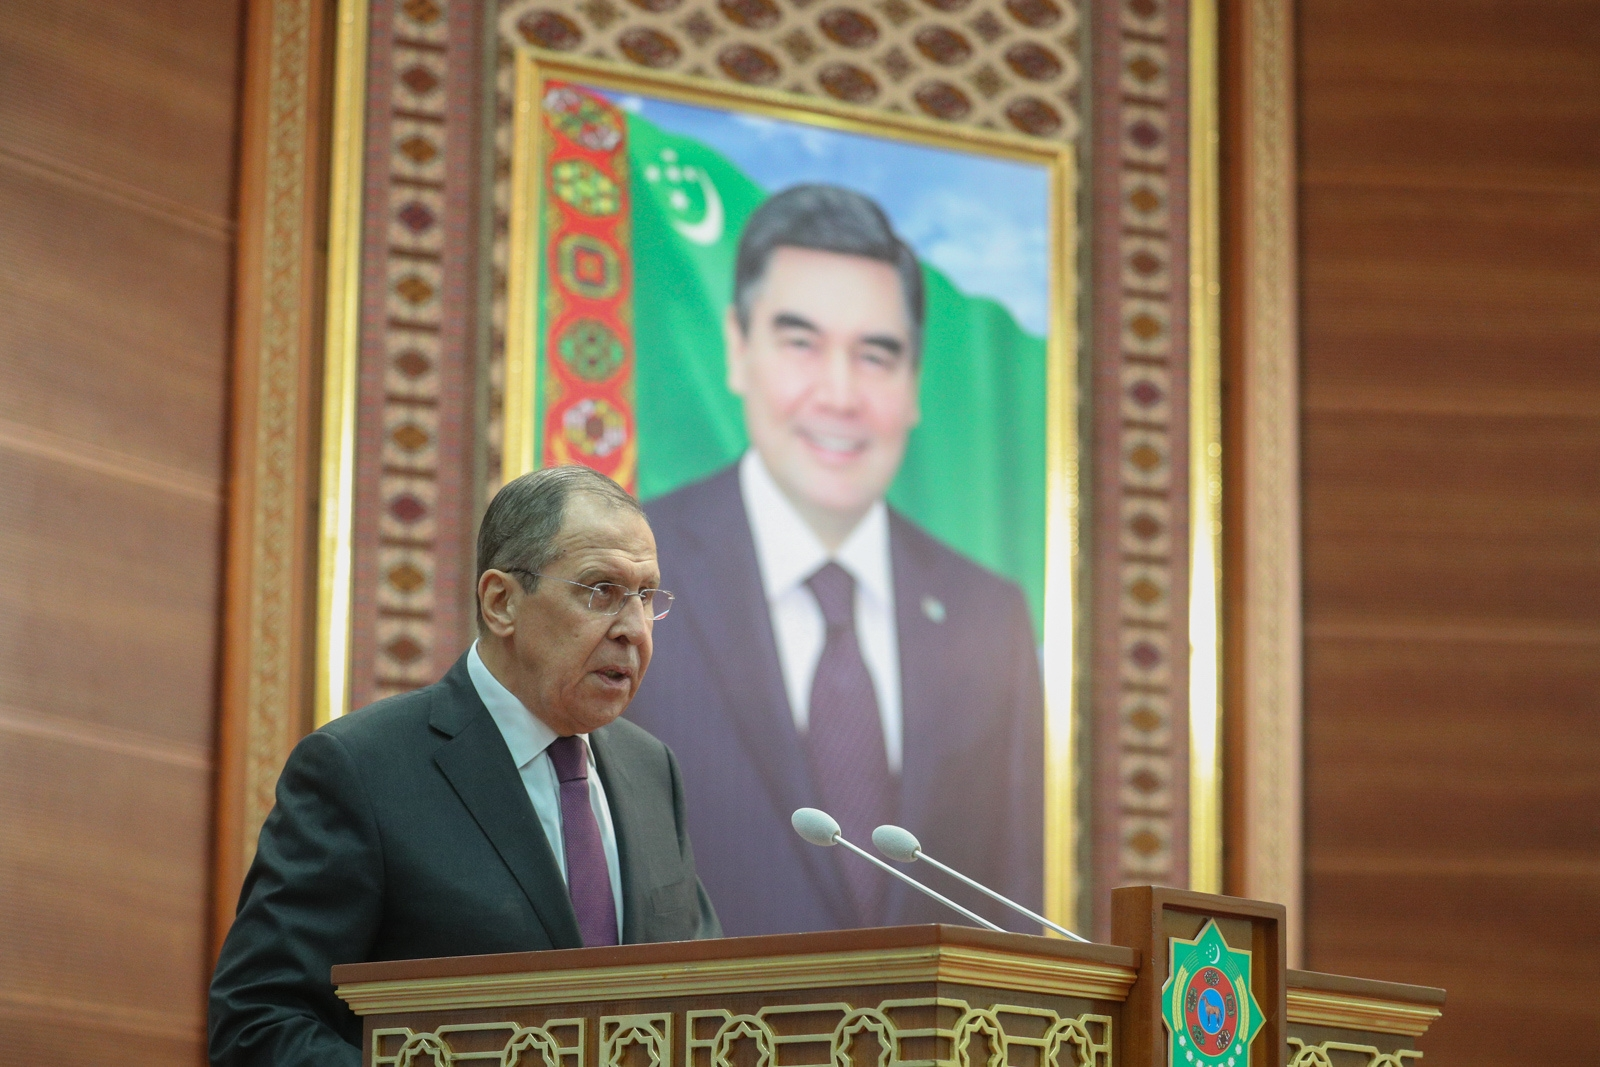 Russia's Minister of Foreign Affairs, Sergey Lavrov, spoke at the Institute of International Relations at Turkmenistan's Ministry of Foreign Affairs in Ashgabat on February 6, 2019.